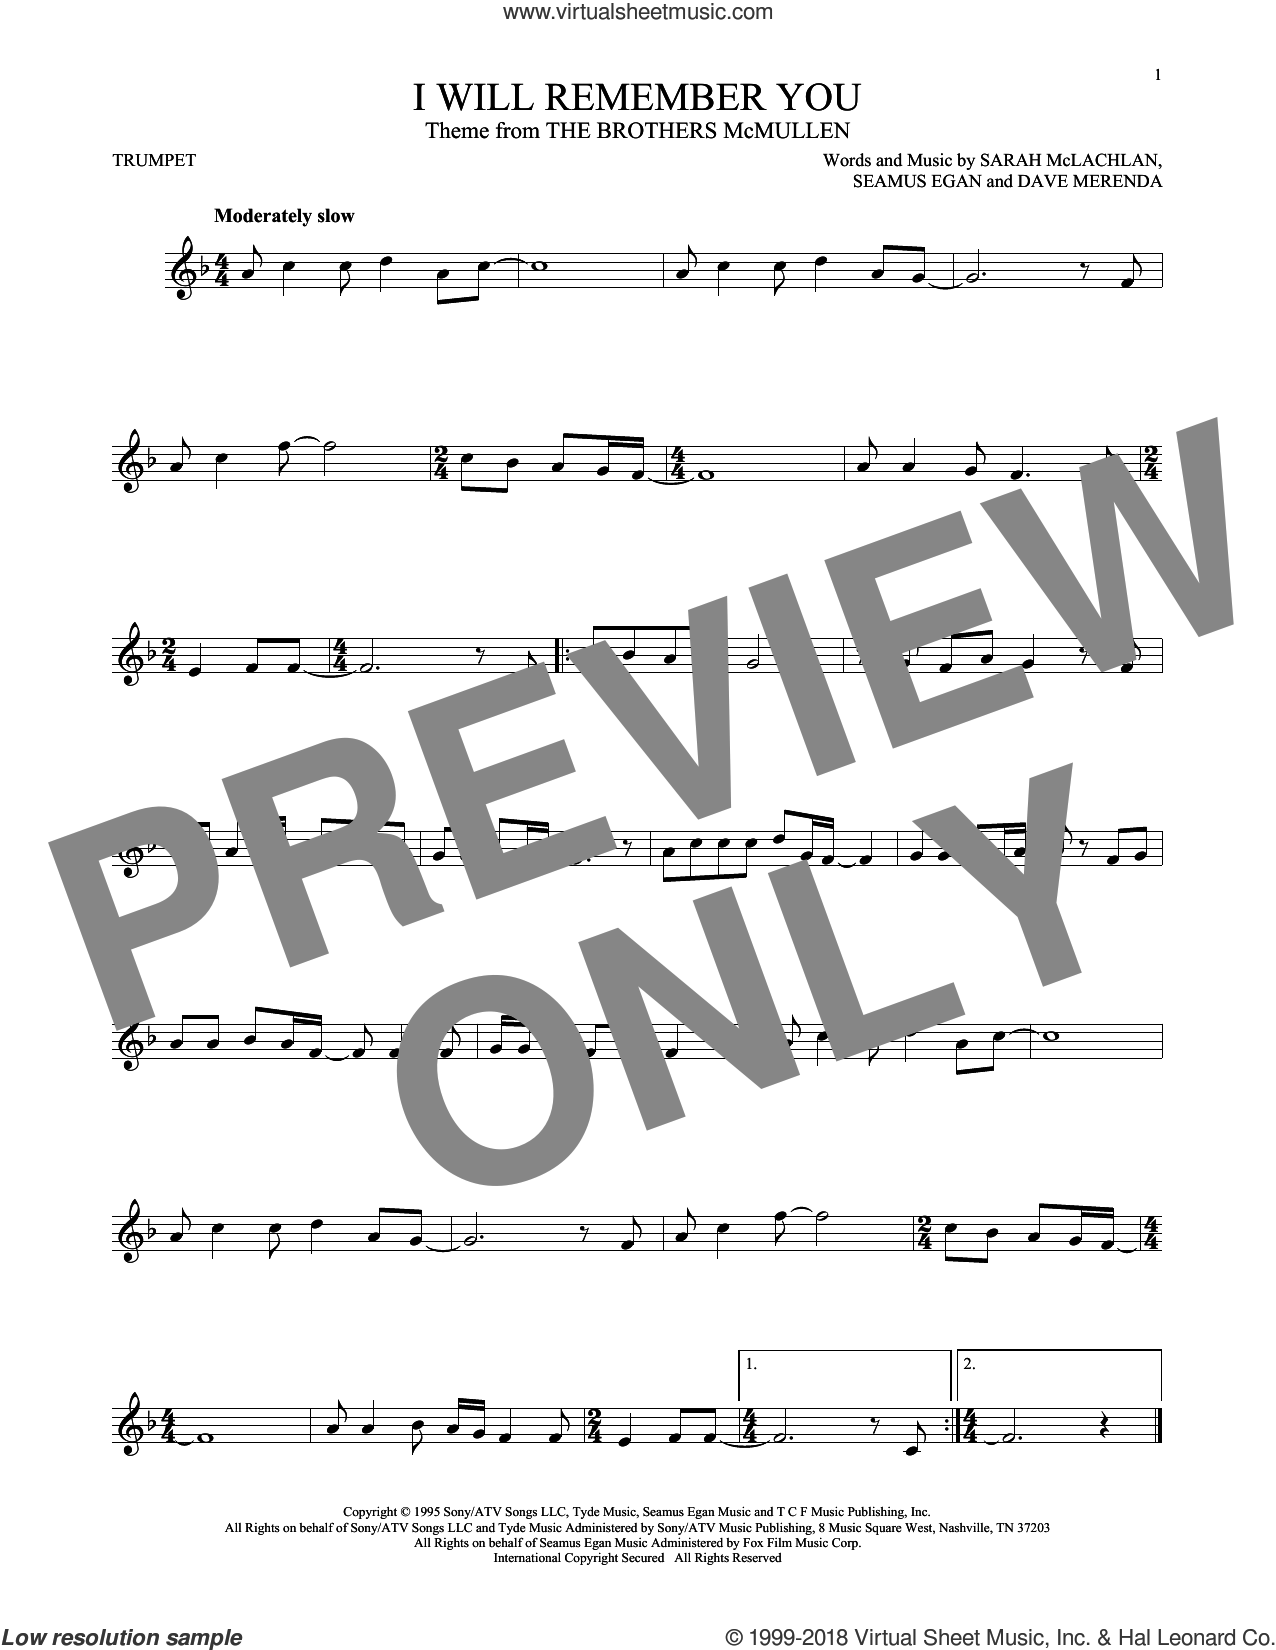 I Will Remember You sheet music for trumpet solo by Sarah McLachlan, Dave Merenda and Seamus Egan, intermediate skill level